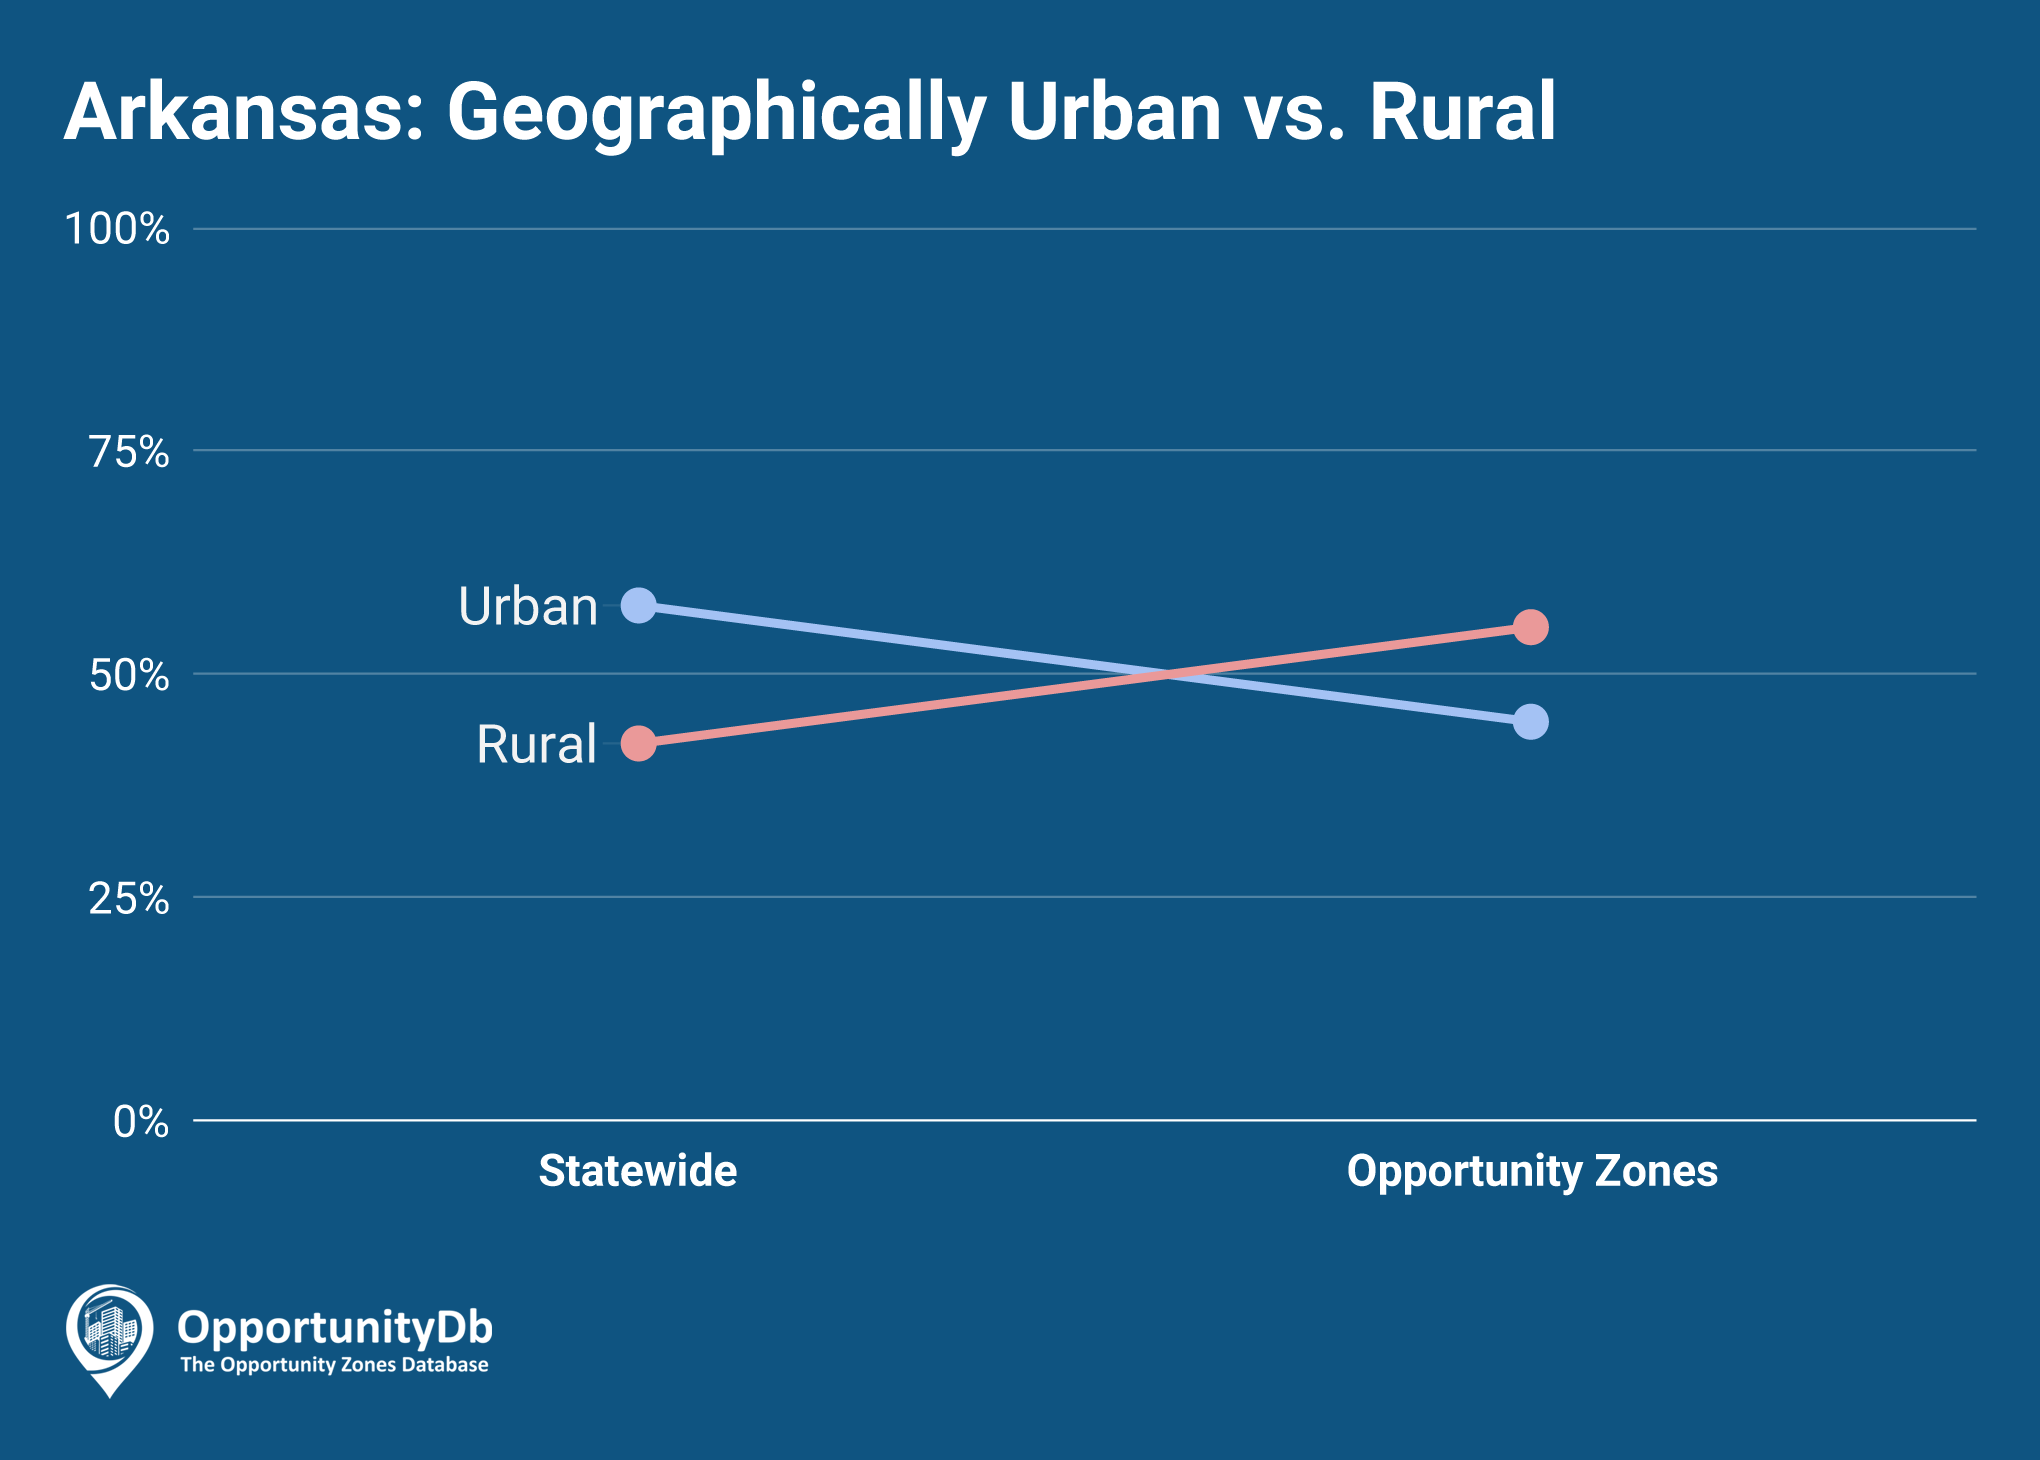 Urban vs. Rural in Arkansas Opportunity Zones